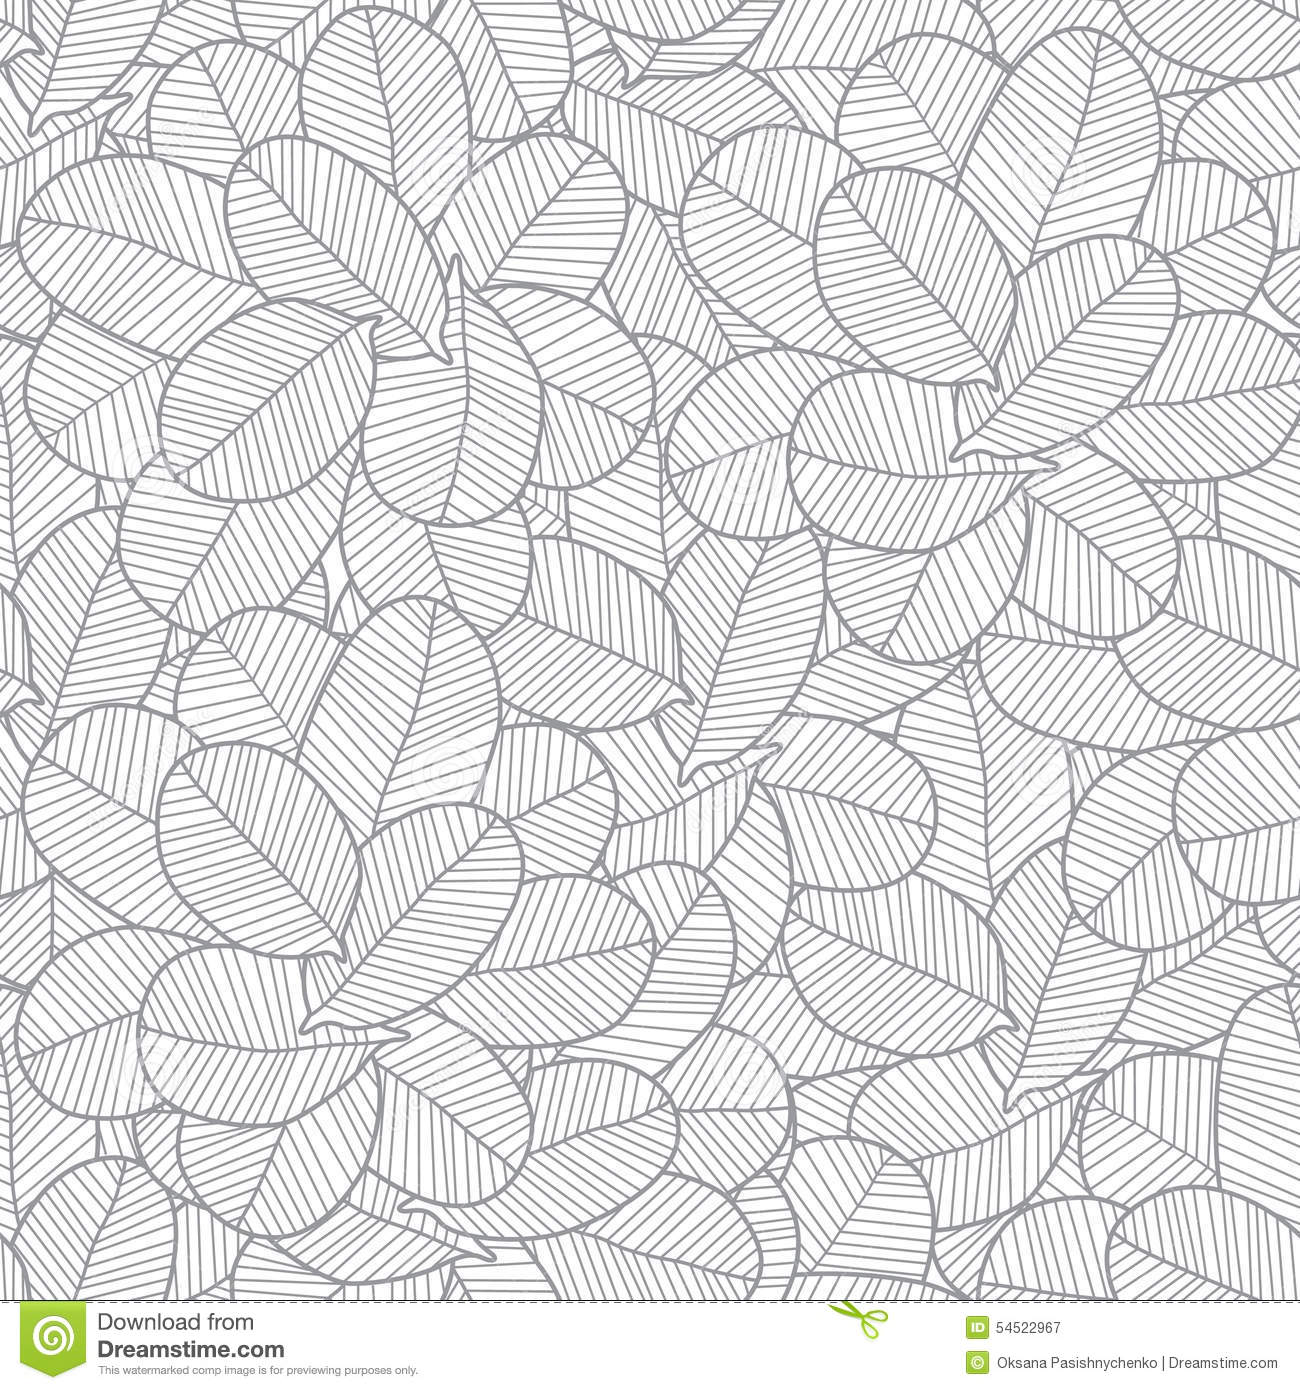 Line Art Vector Design : Vector line art grey leaves texture seamless stock